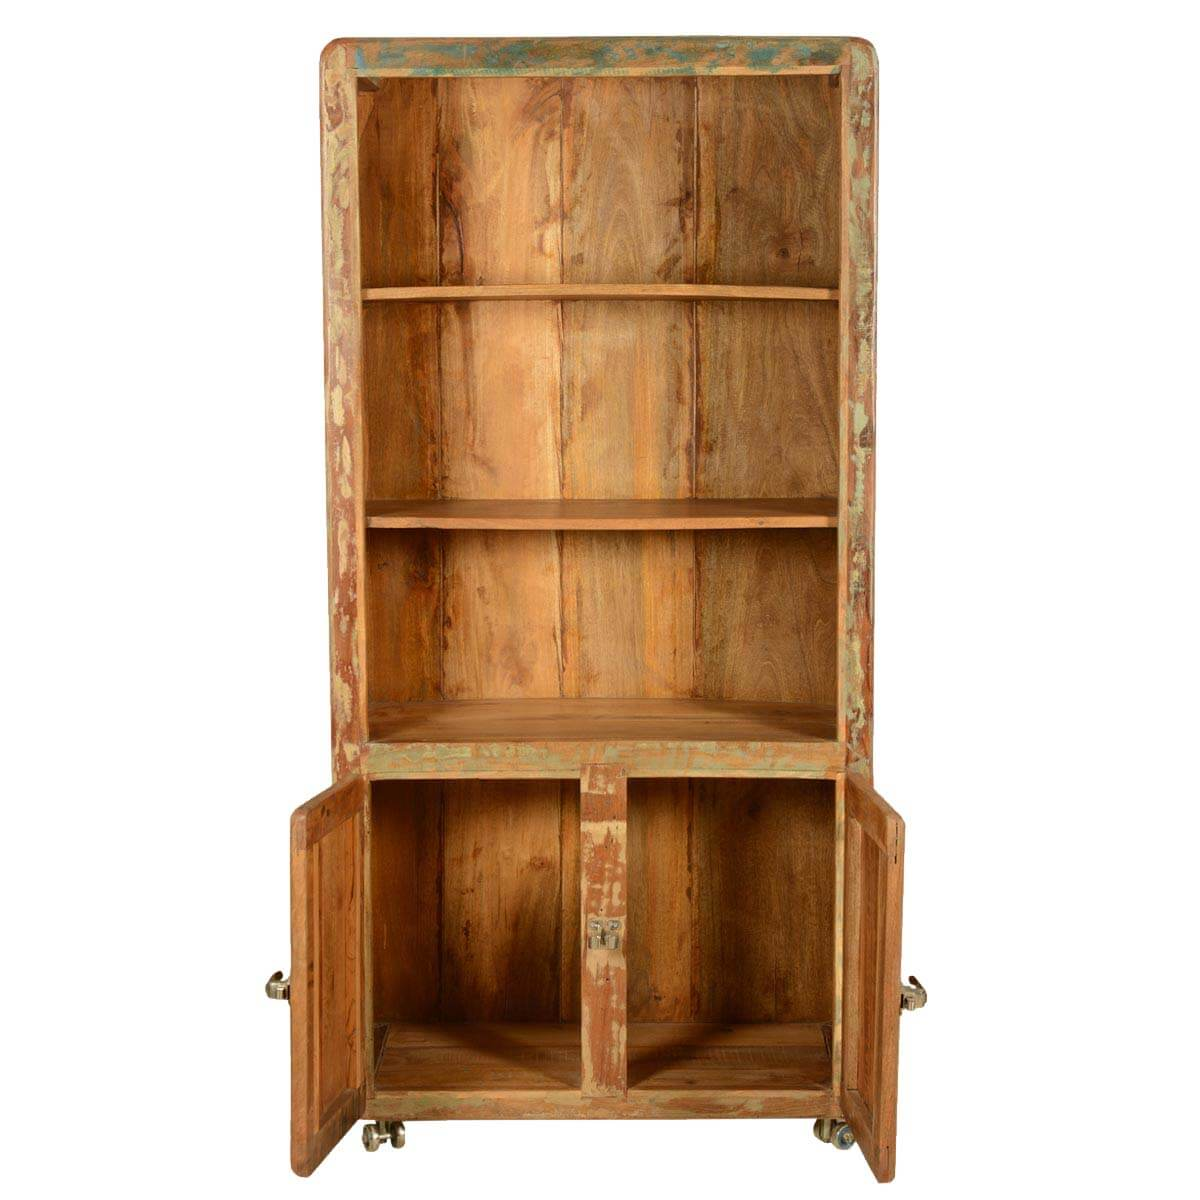 Reclaimed wood industrial style hand crafted shelf